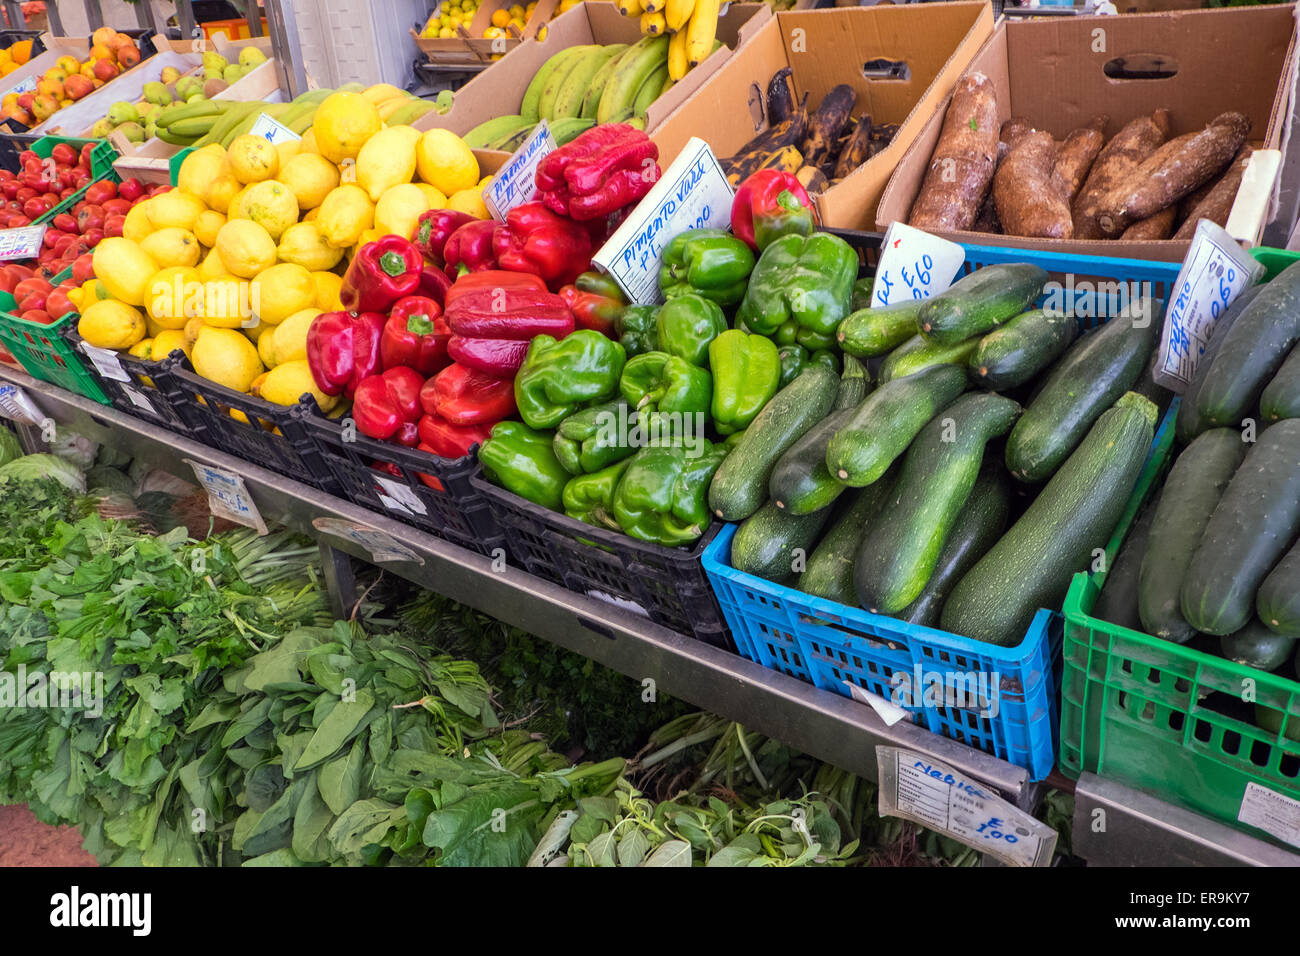 Great choice of vegetables for sale at a market - Stock Image